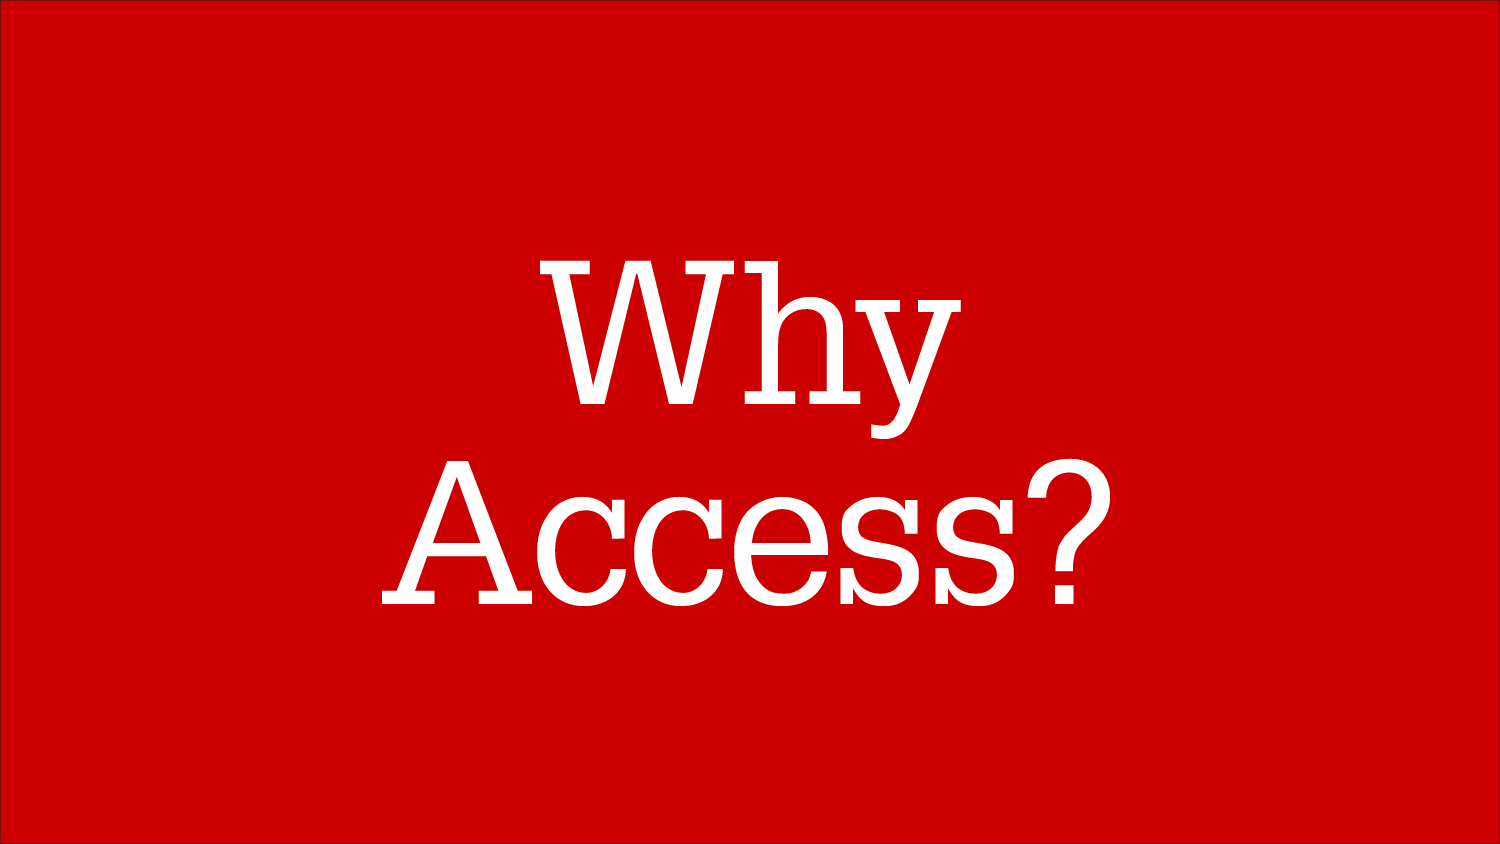 Graphic Image: Why Access?